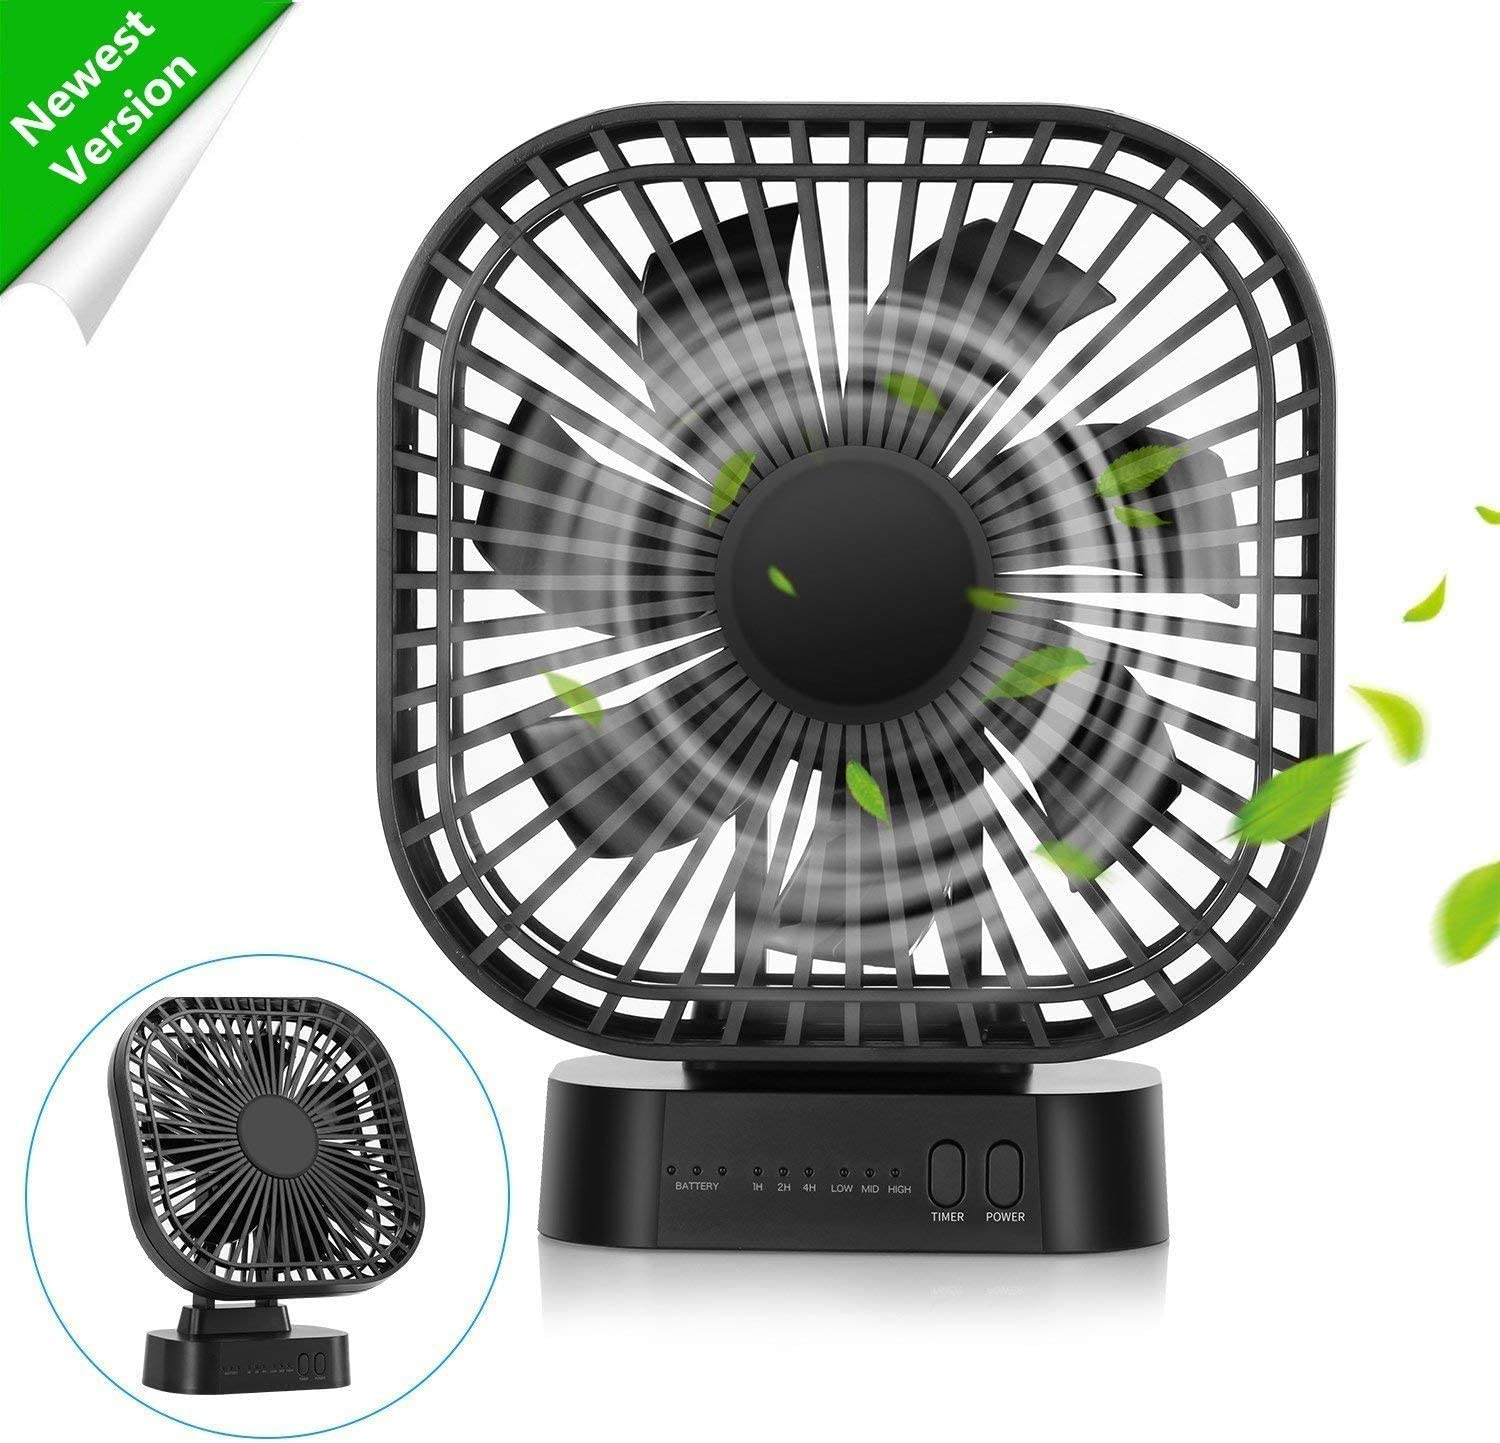 50000mAh Portable Fan with Magnet Base, Battery Operated Desk Fan with Timer, 3 speeds, 7 Blades, Super Quiet, Powered by USB or Rechargeable Battery, Small Personal Fan for Table & Outdoor